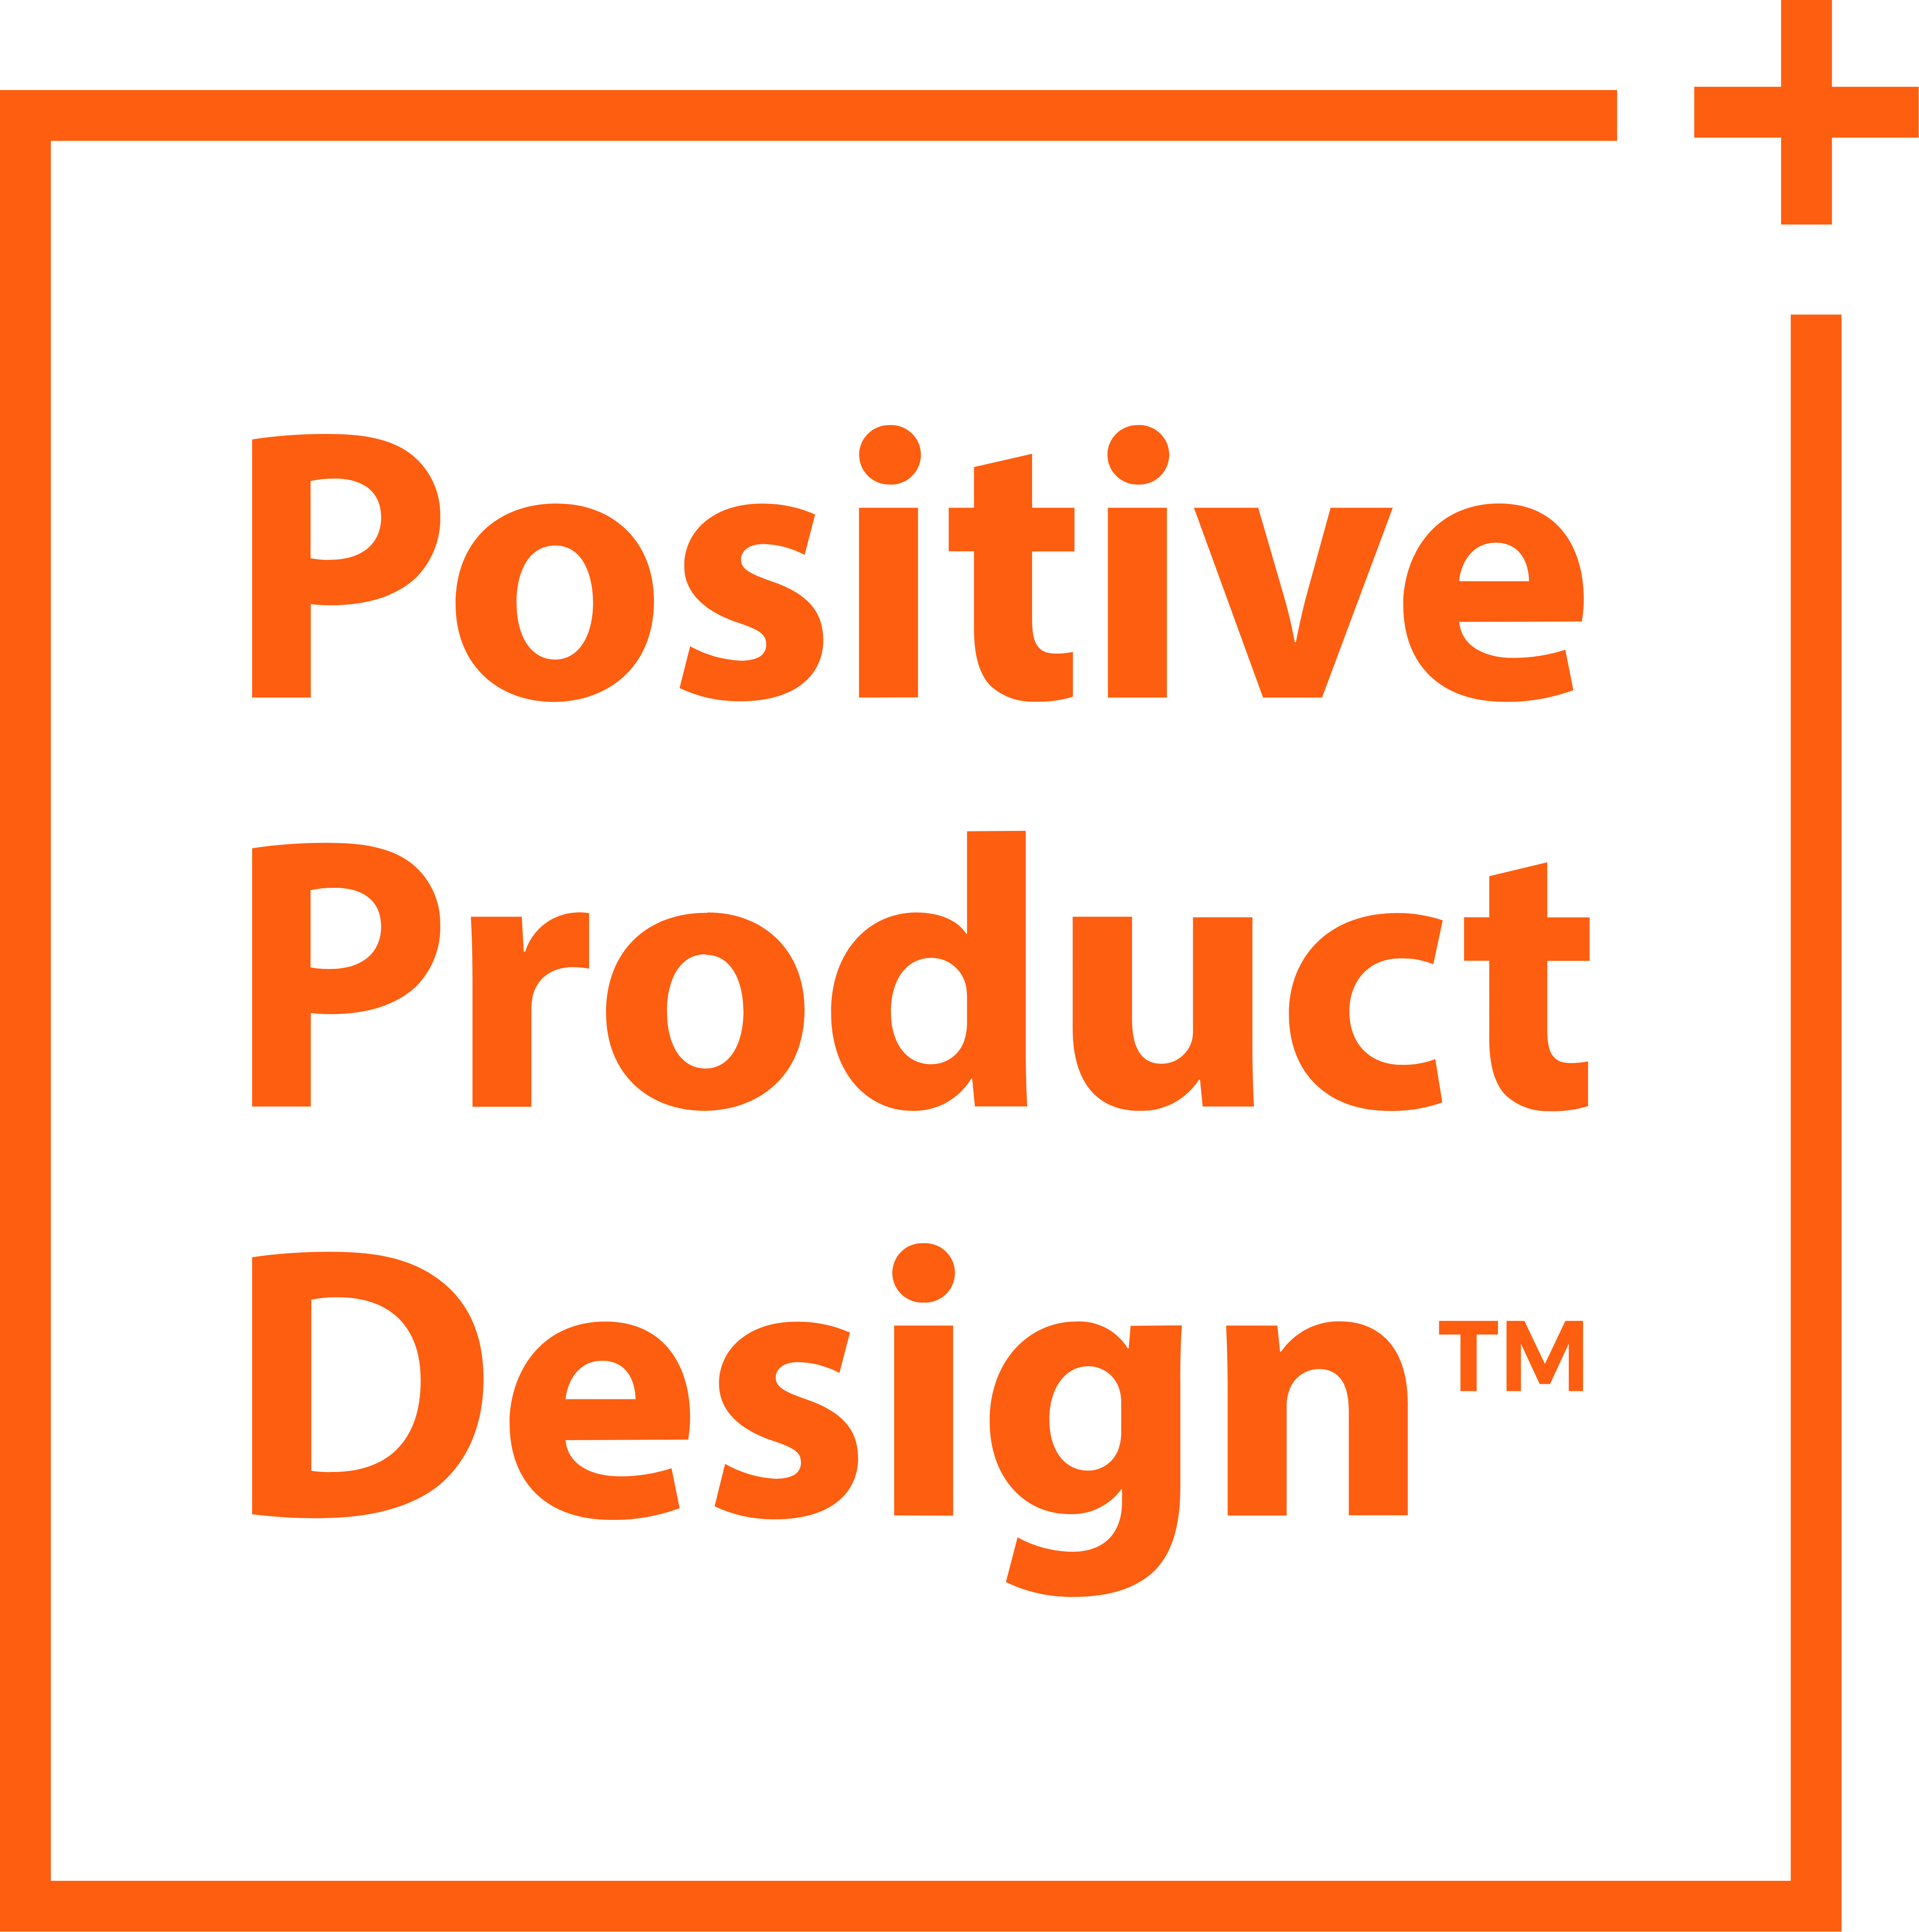 Positive Product Design